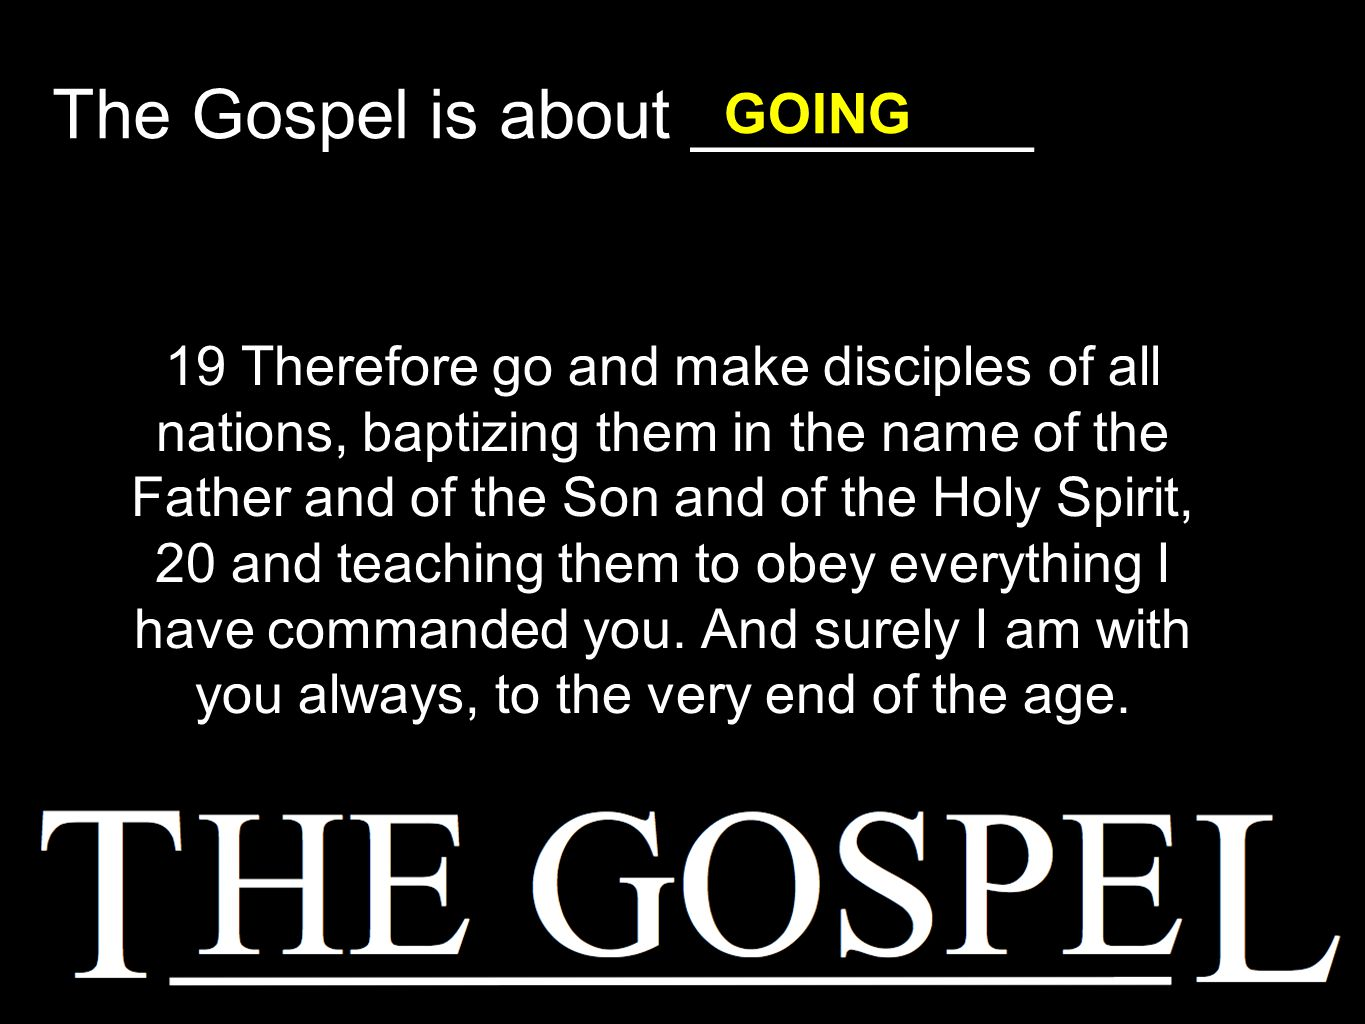 19 Therefore go and make disciples of all nations, baptizing them in the name of the Father and of the Son and of the Holy Spirit, 20 and teaching the